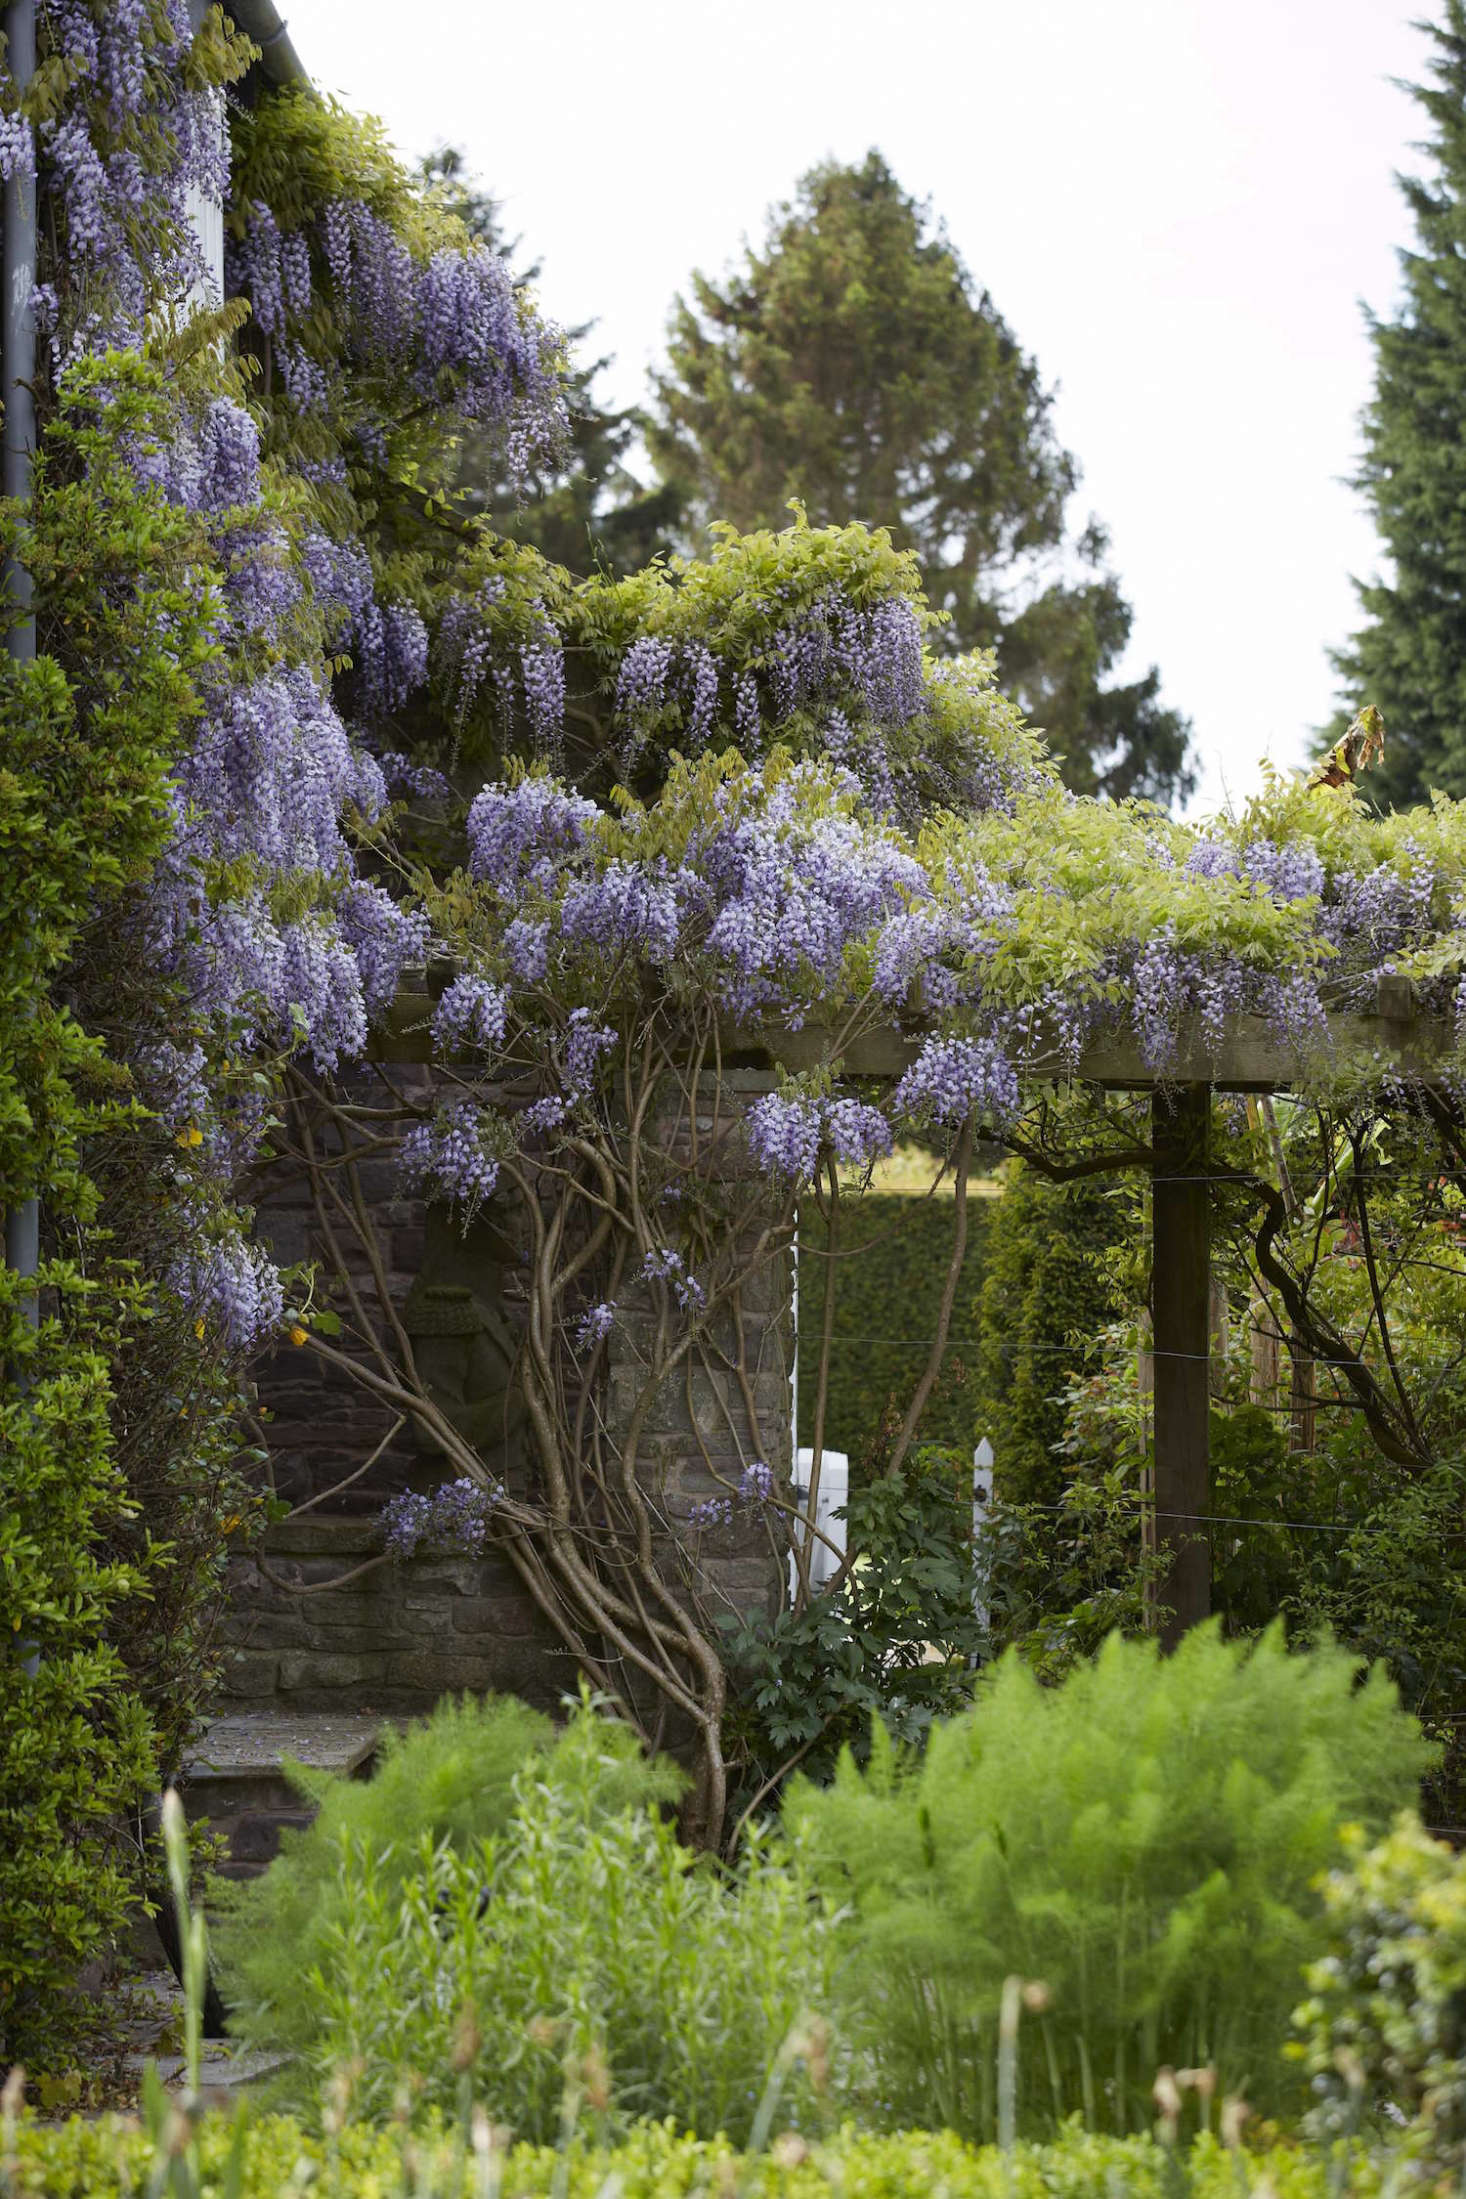 Prune wisteria twice a season: in early March before it blooms and again in late summer to remove what Macunovich refers to as &#8